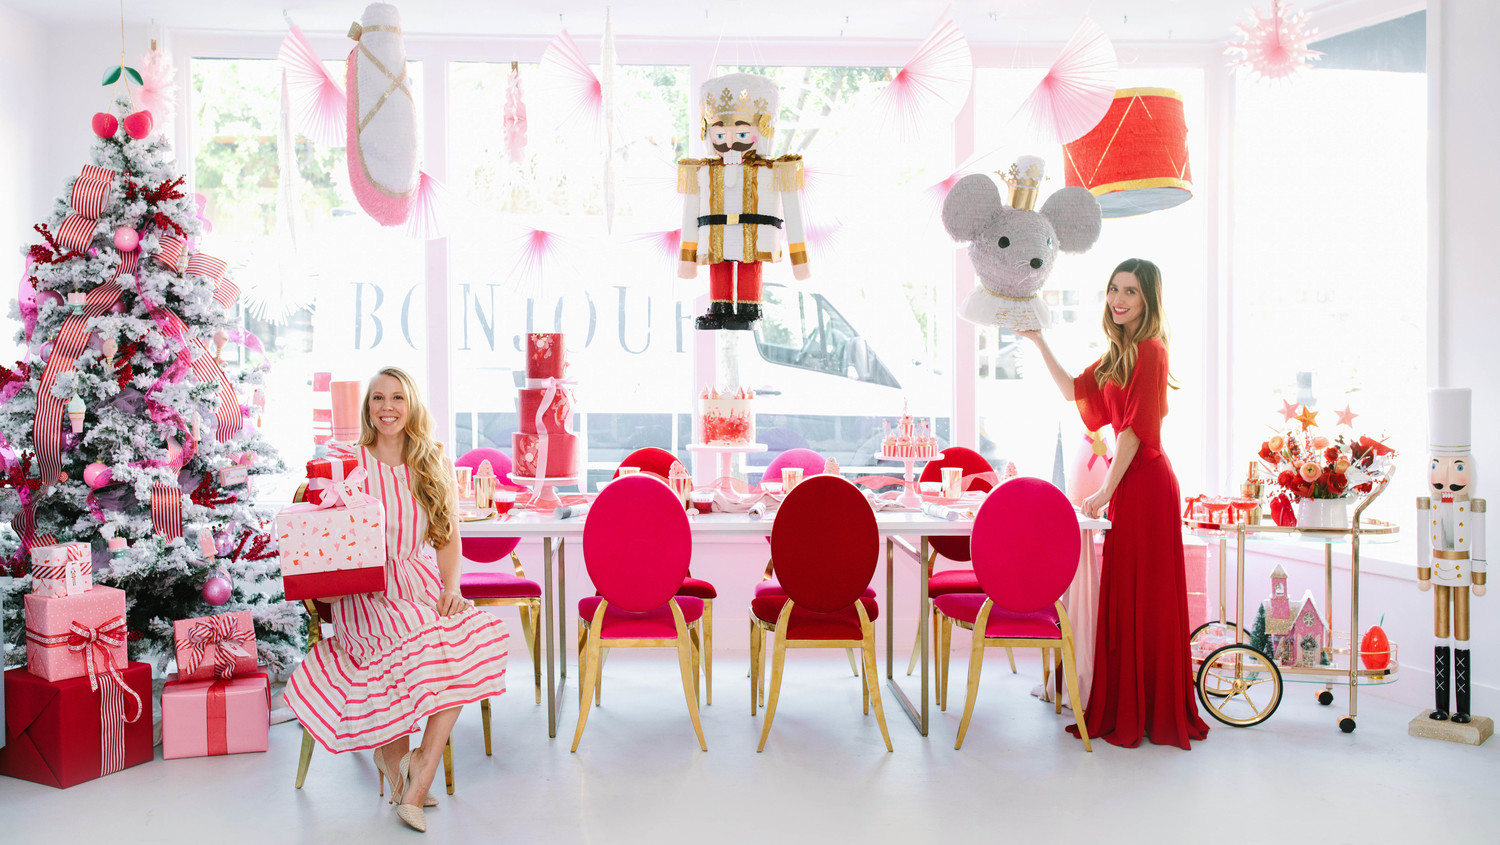 nutcracker christmas party pink red decor with pinatas